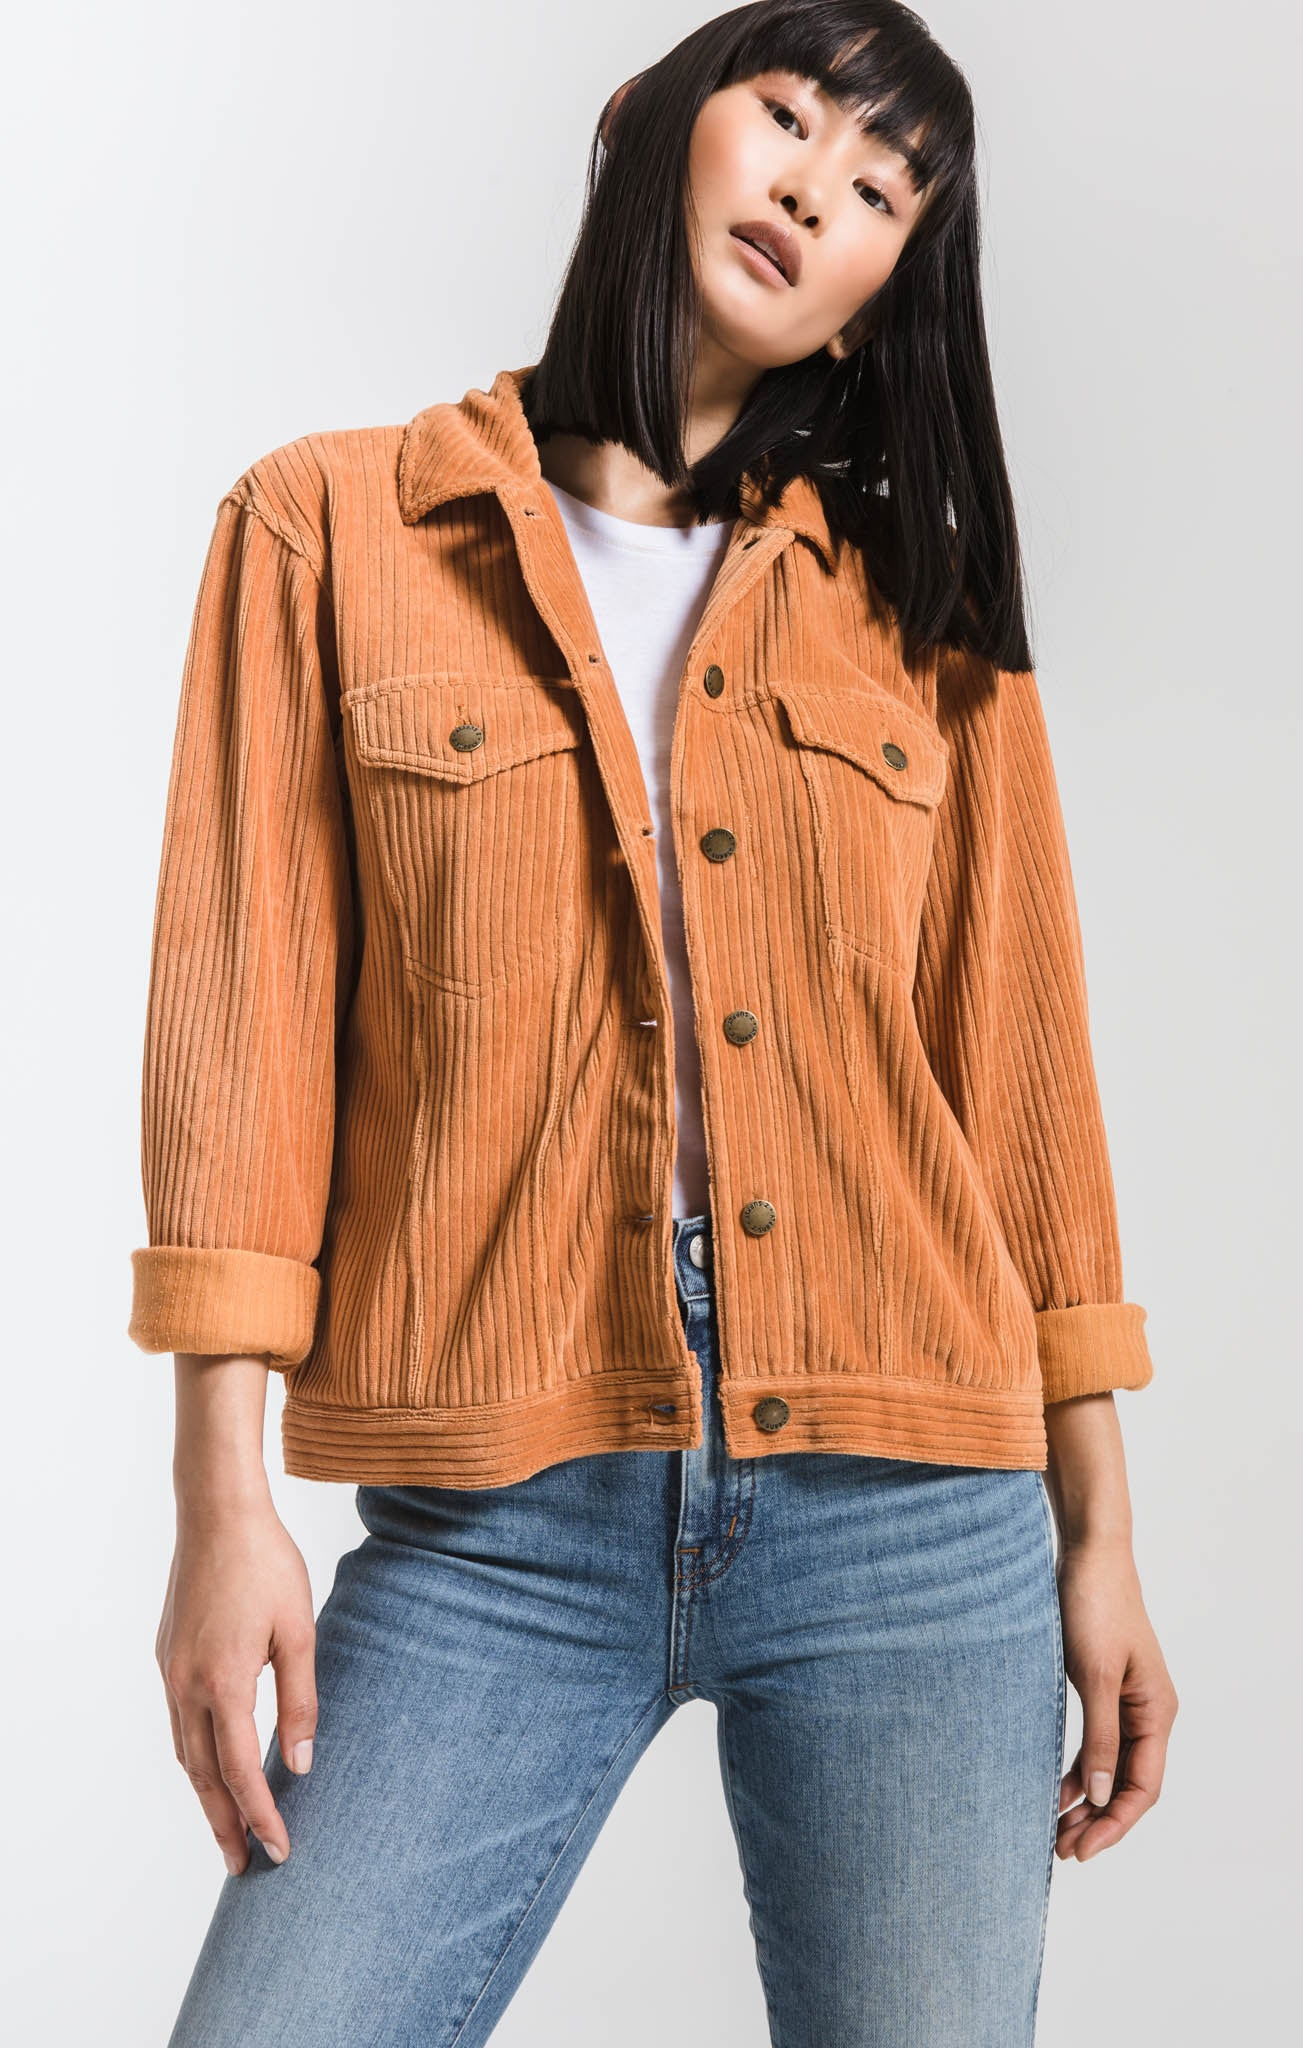 Jackets The Knit Corduroy Jacket Warm Wood